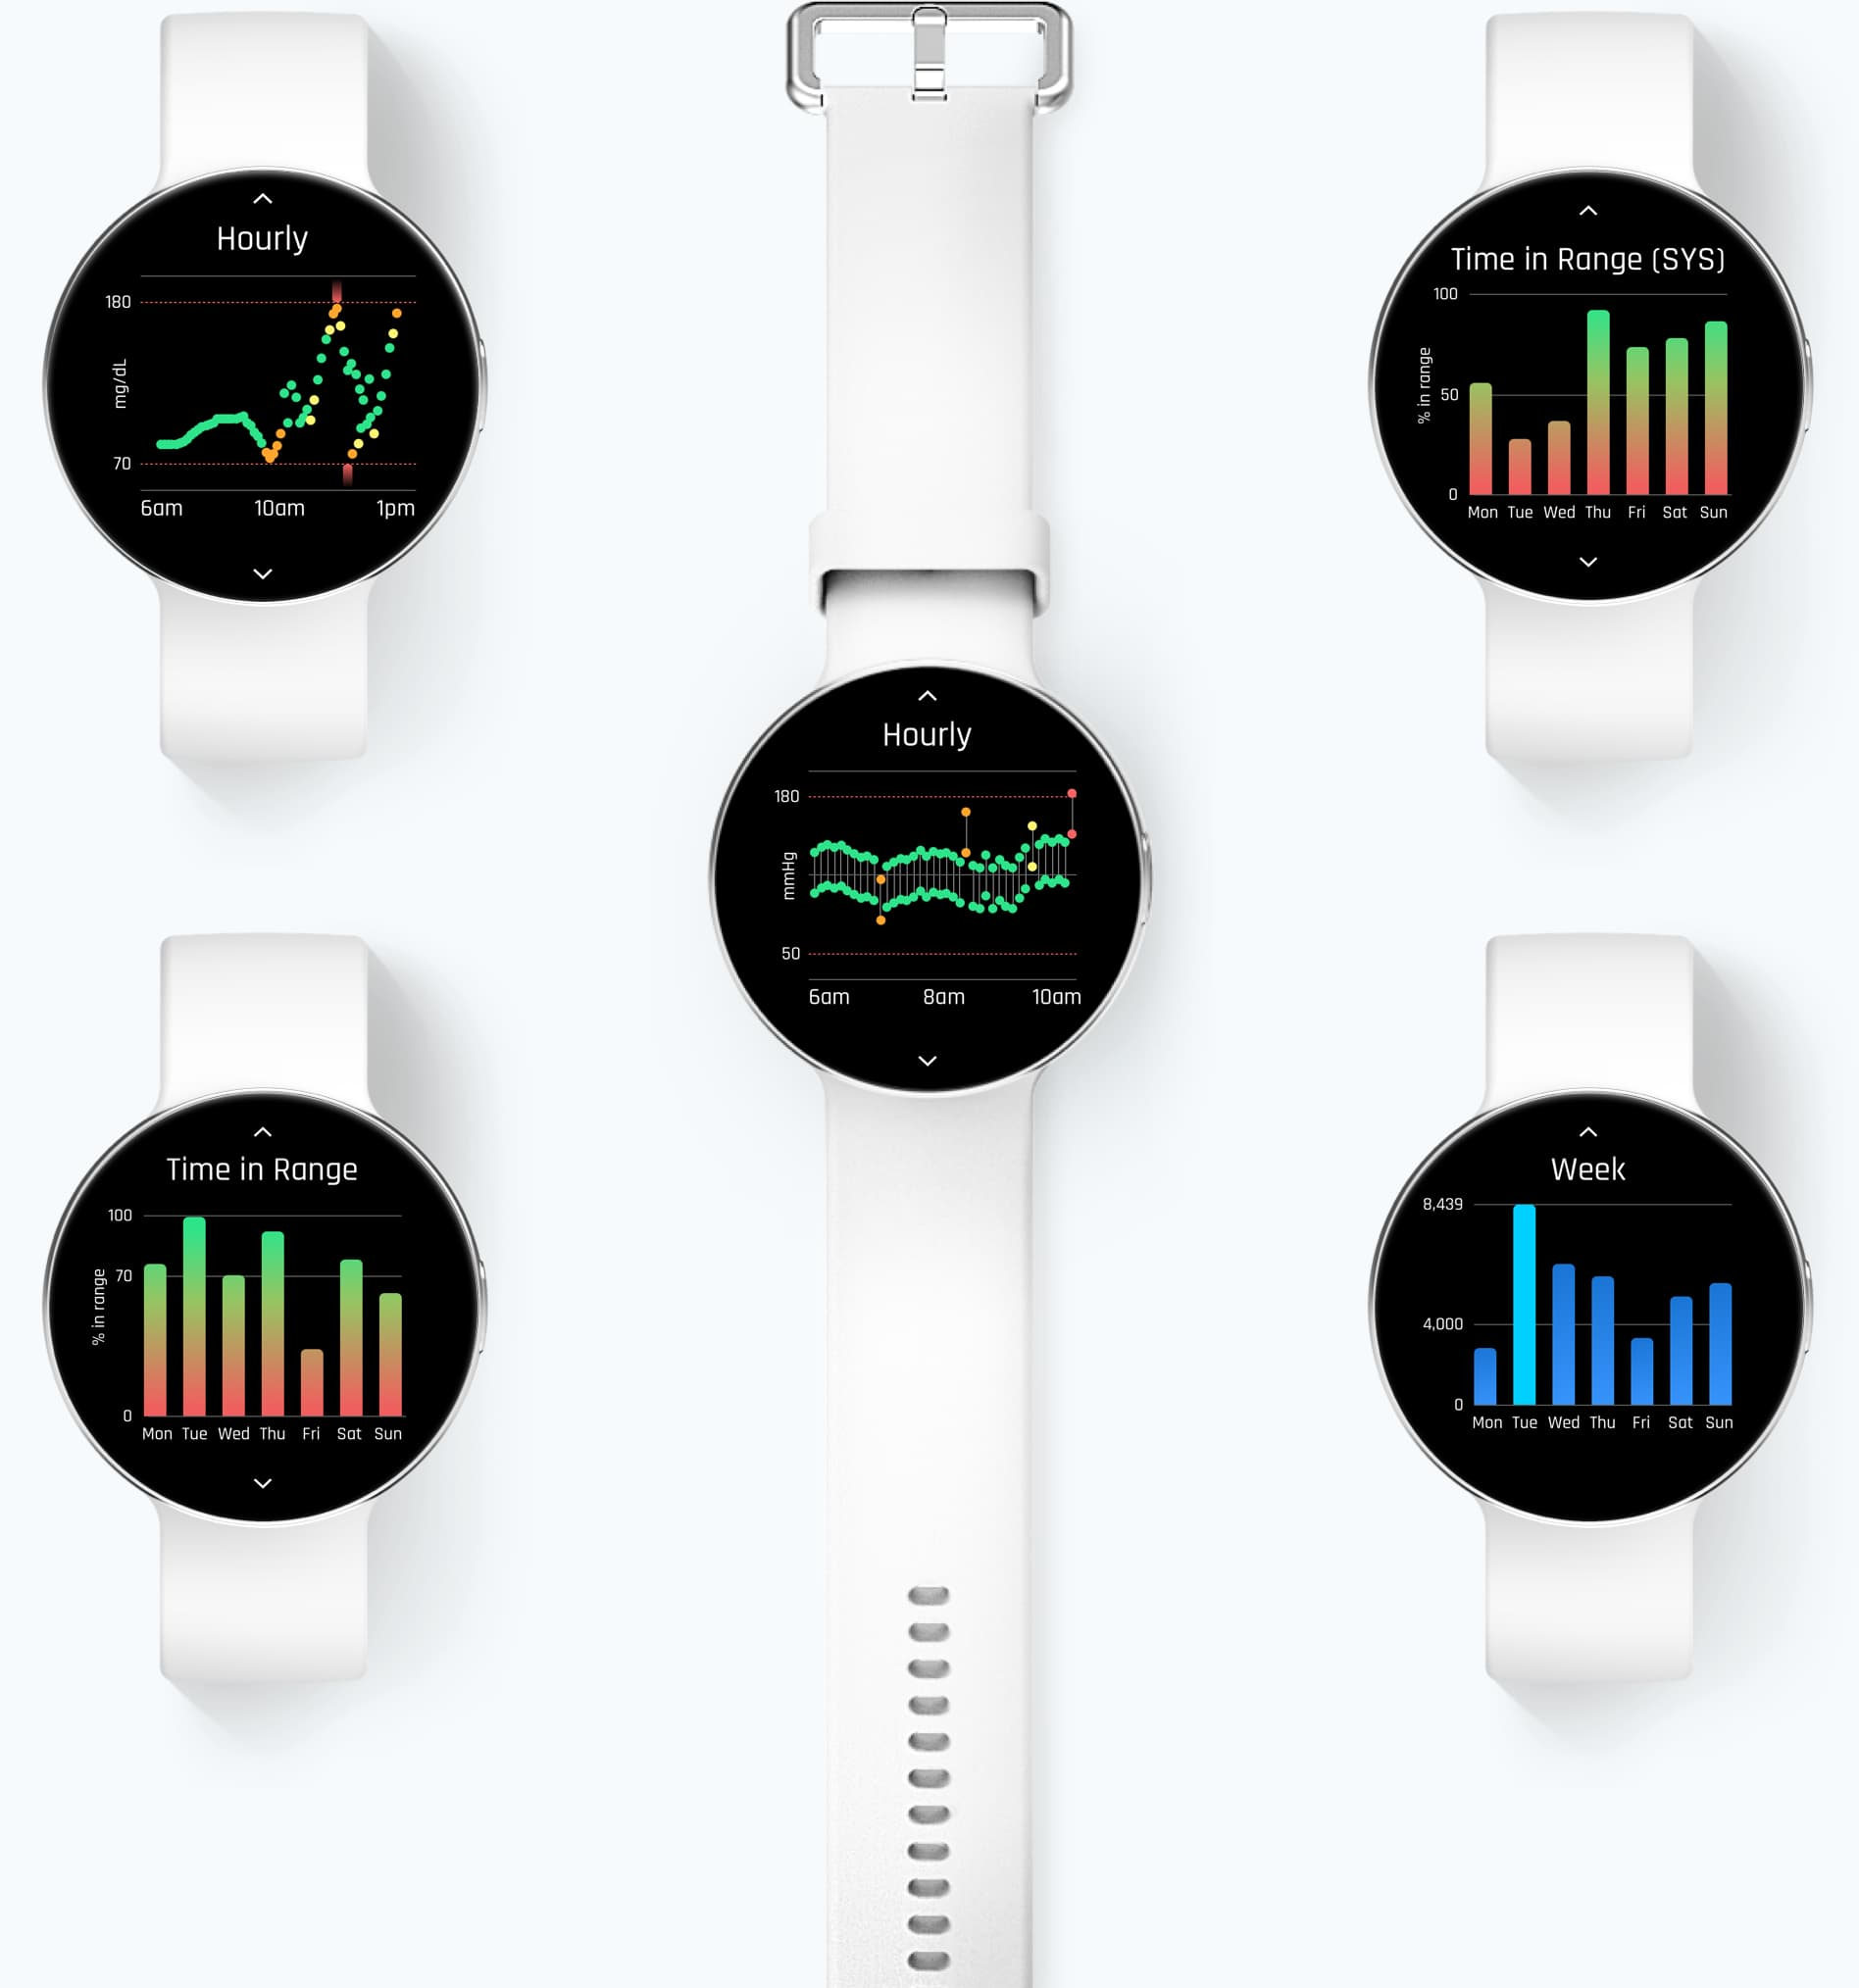 Rendering of smartwatch showing various screen designs for graphing vital signs over time.